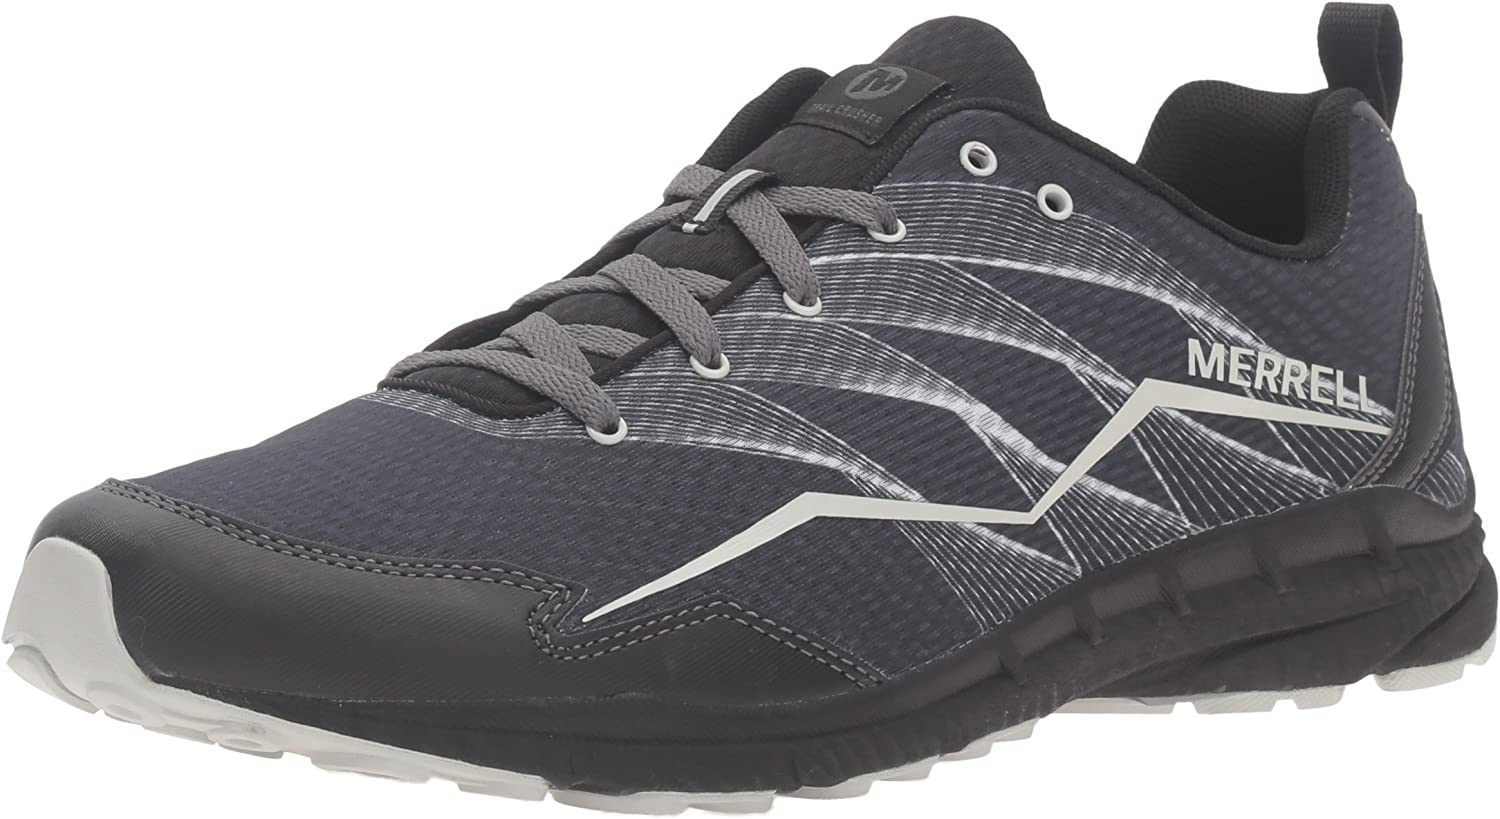 Merrell Men s Crusher Trail Runner